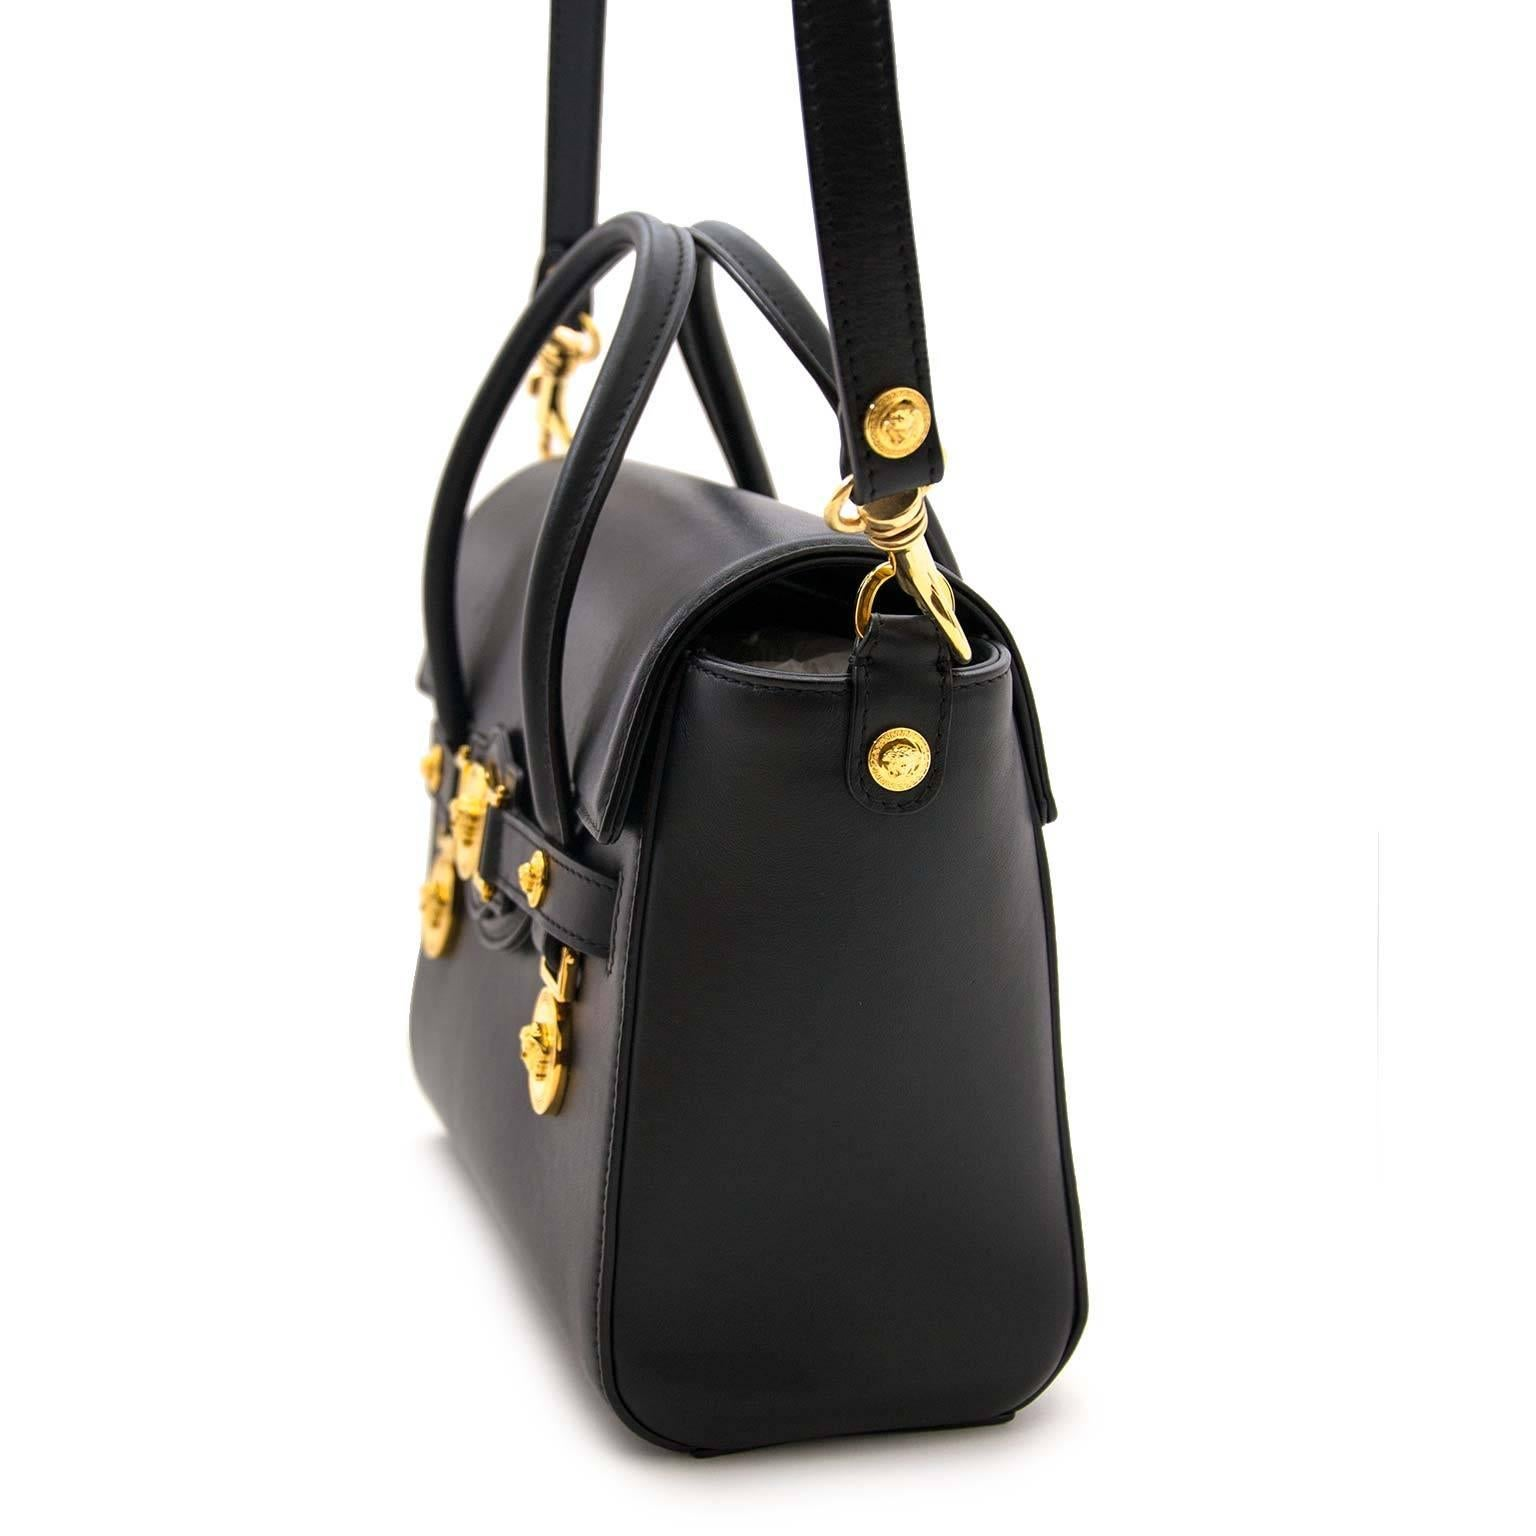 f1b1adcd5a Versace Black Medusa Crossbody Bag at 1stdibs